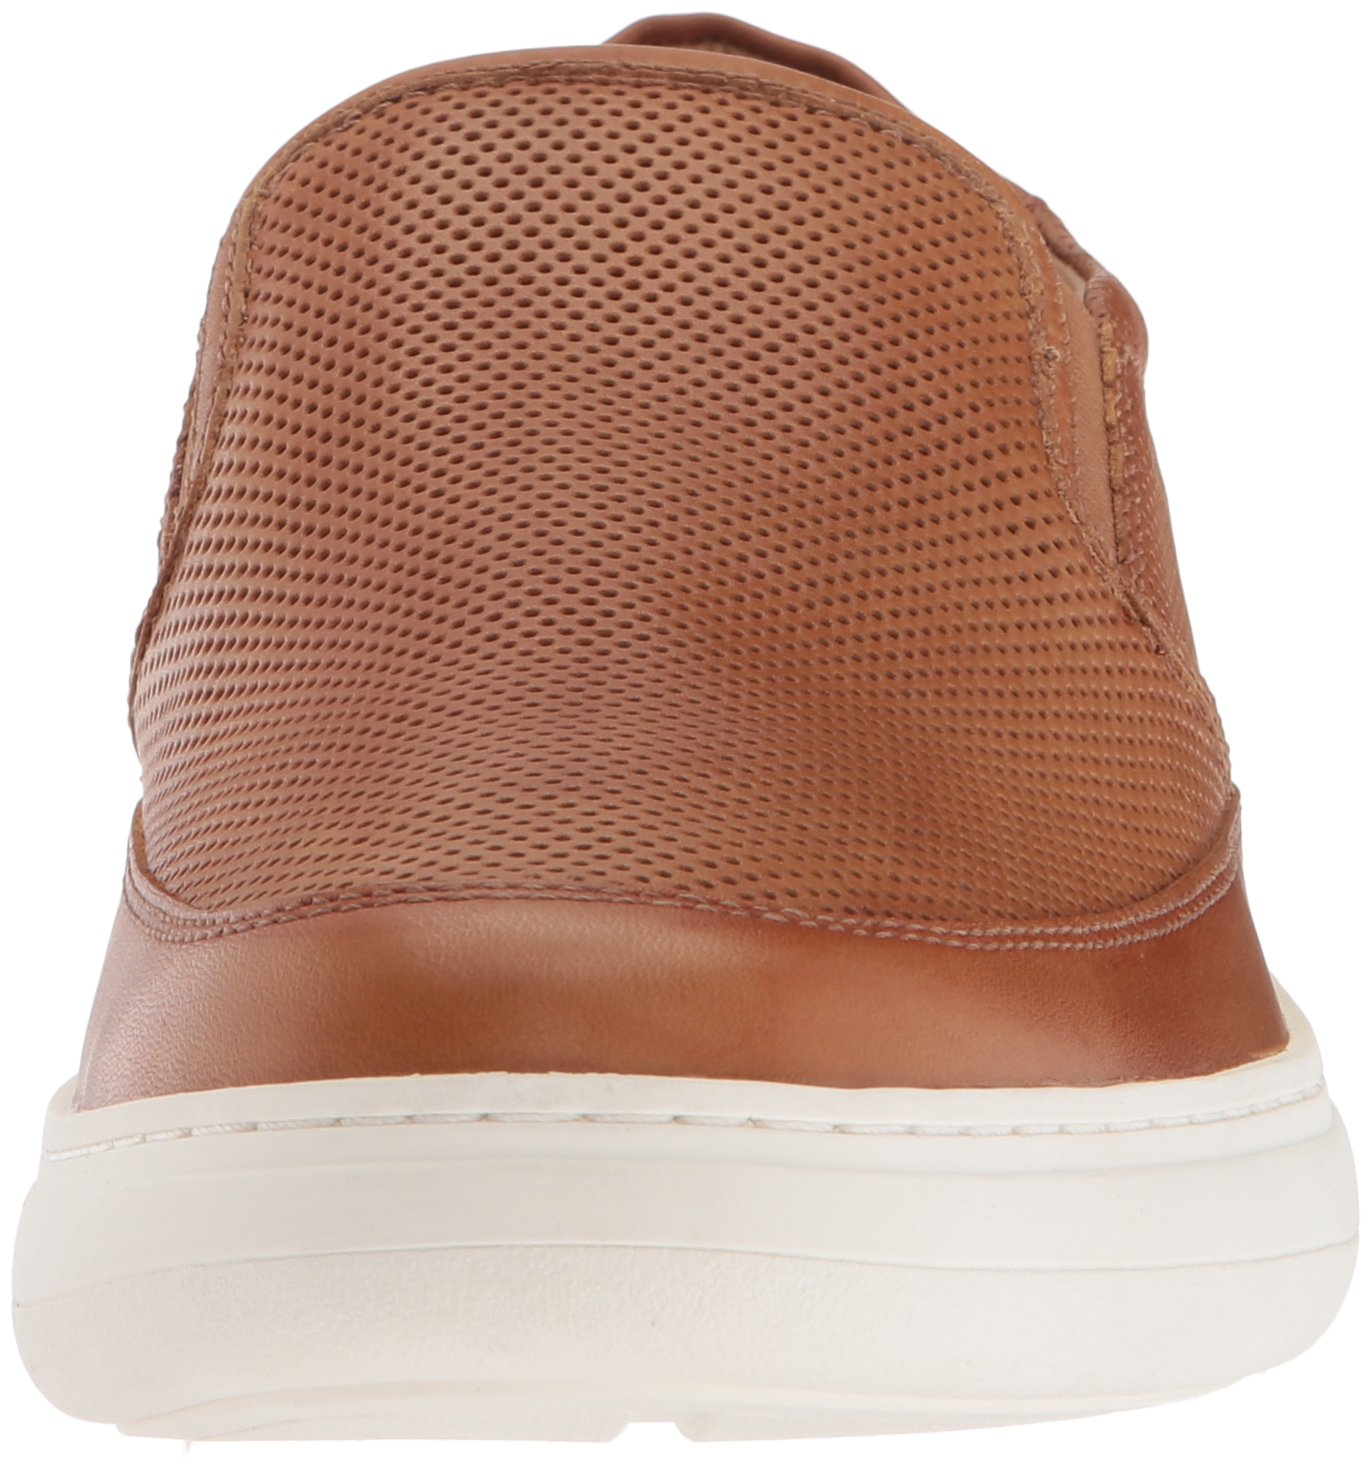 Donald J Pliner Men's Corbyn Sneaker, Saddle, 10.5 Medium US by Donald J Pliner (Image #4)